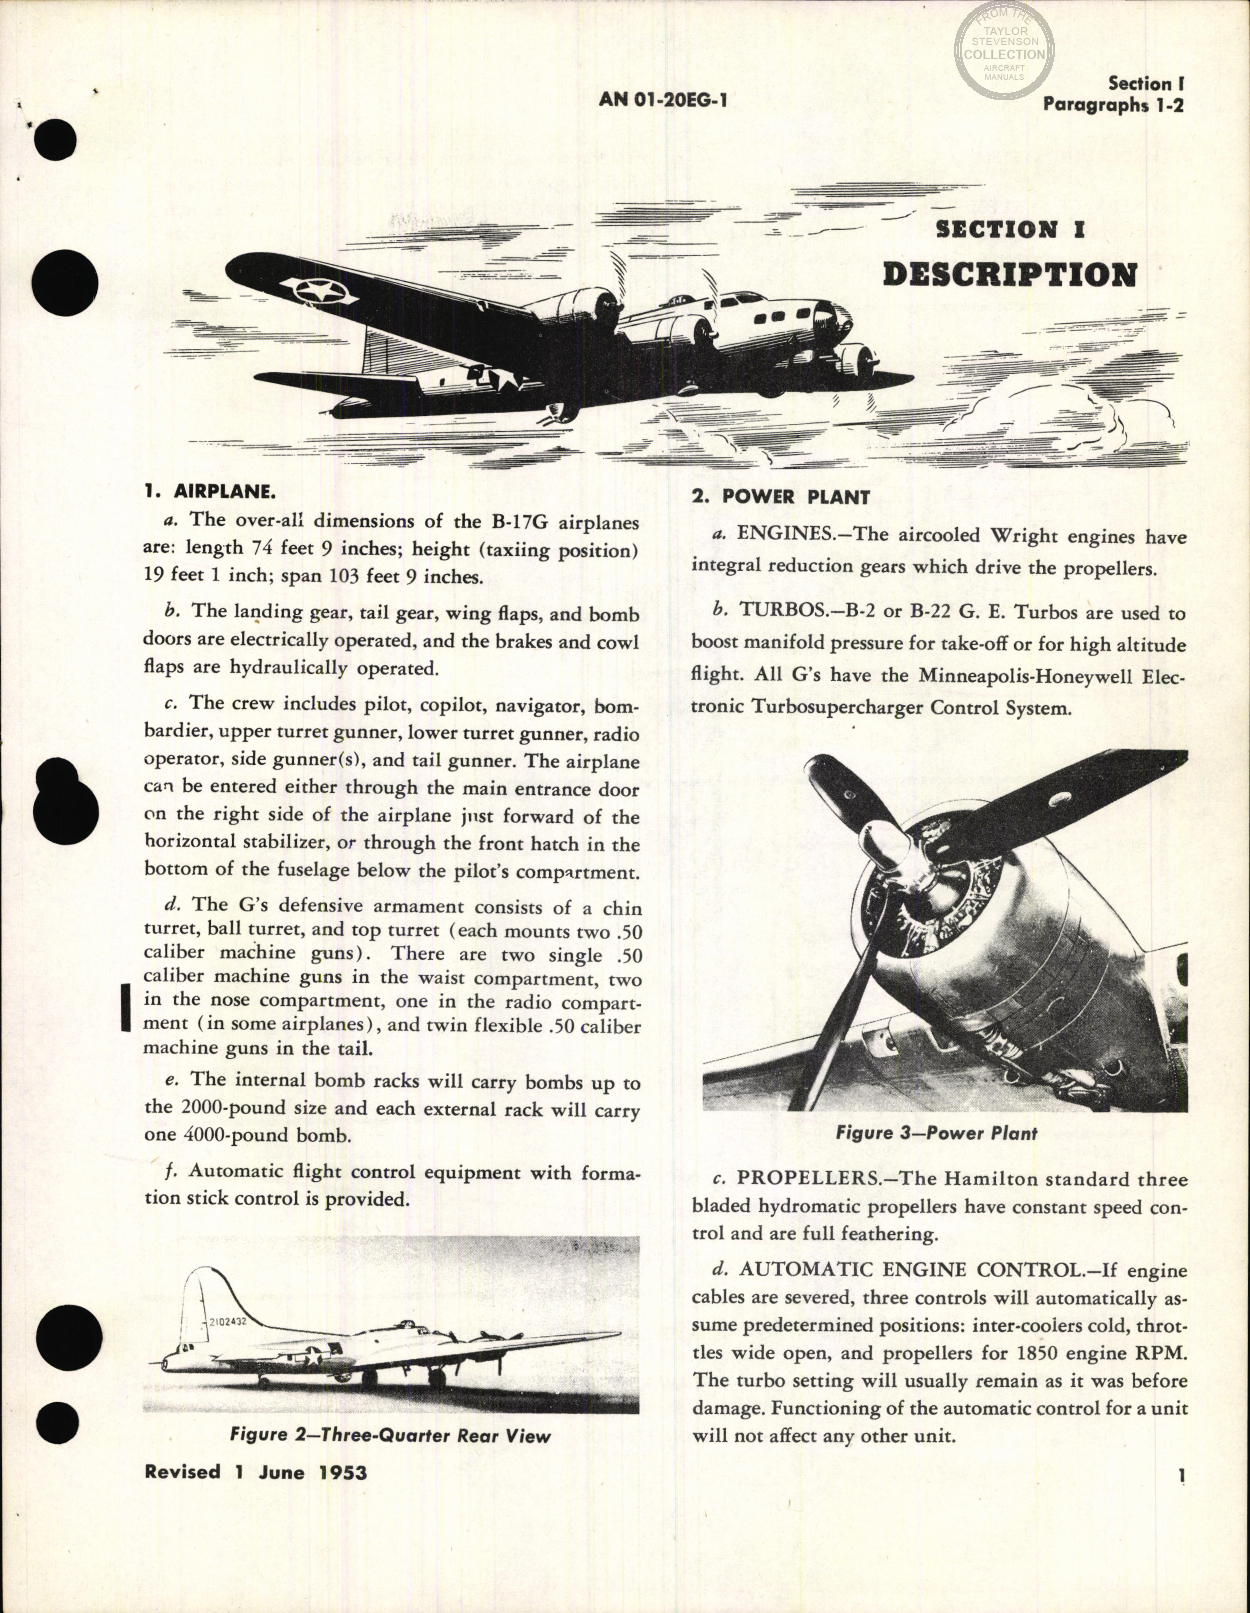 Sample page 7 from AirCorps Library document: Flight Handbook for B-17G, PB-1E Aircraft